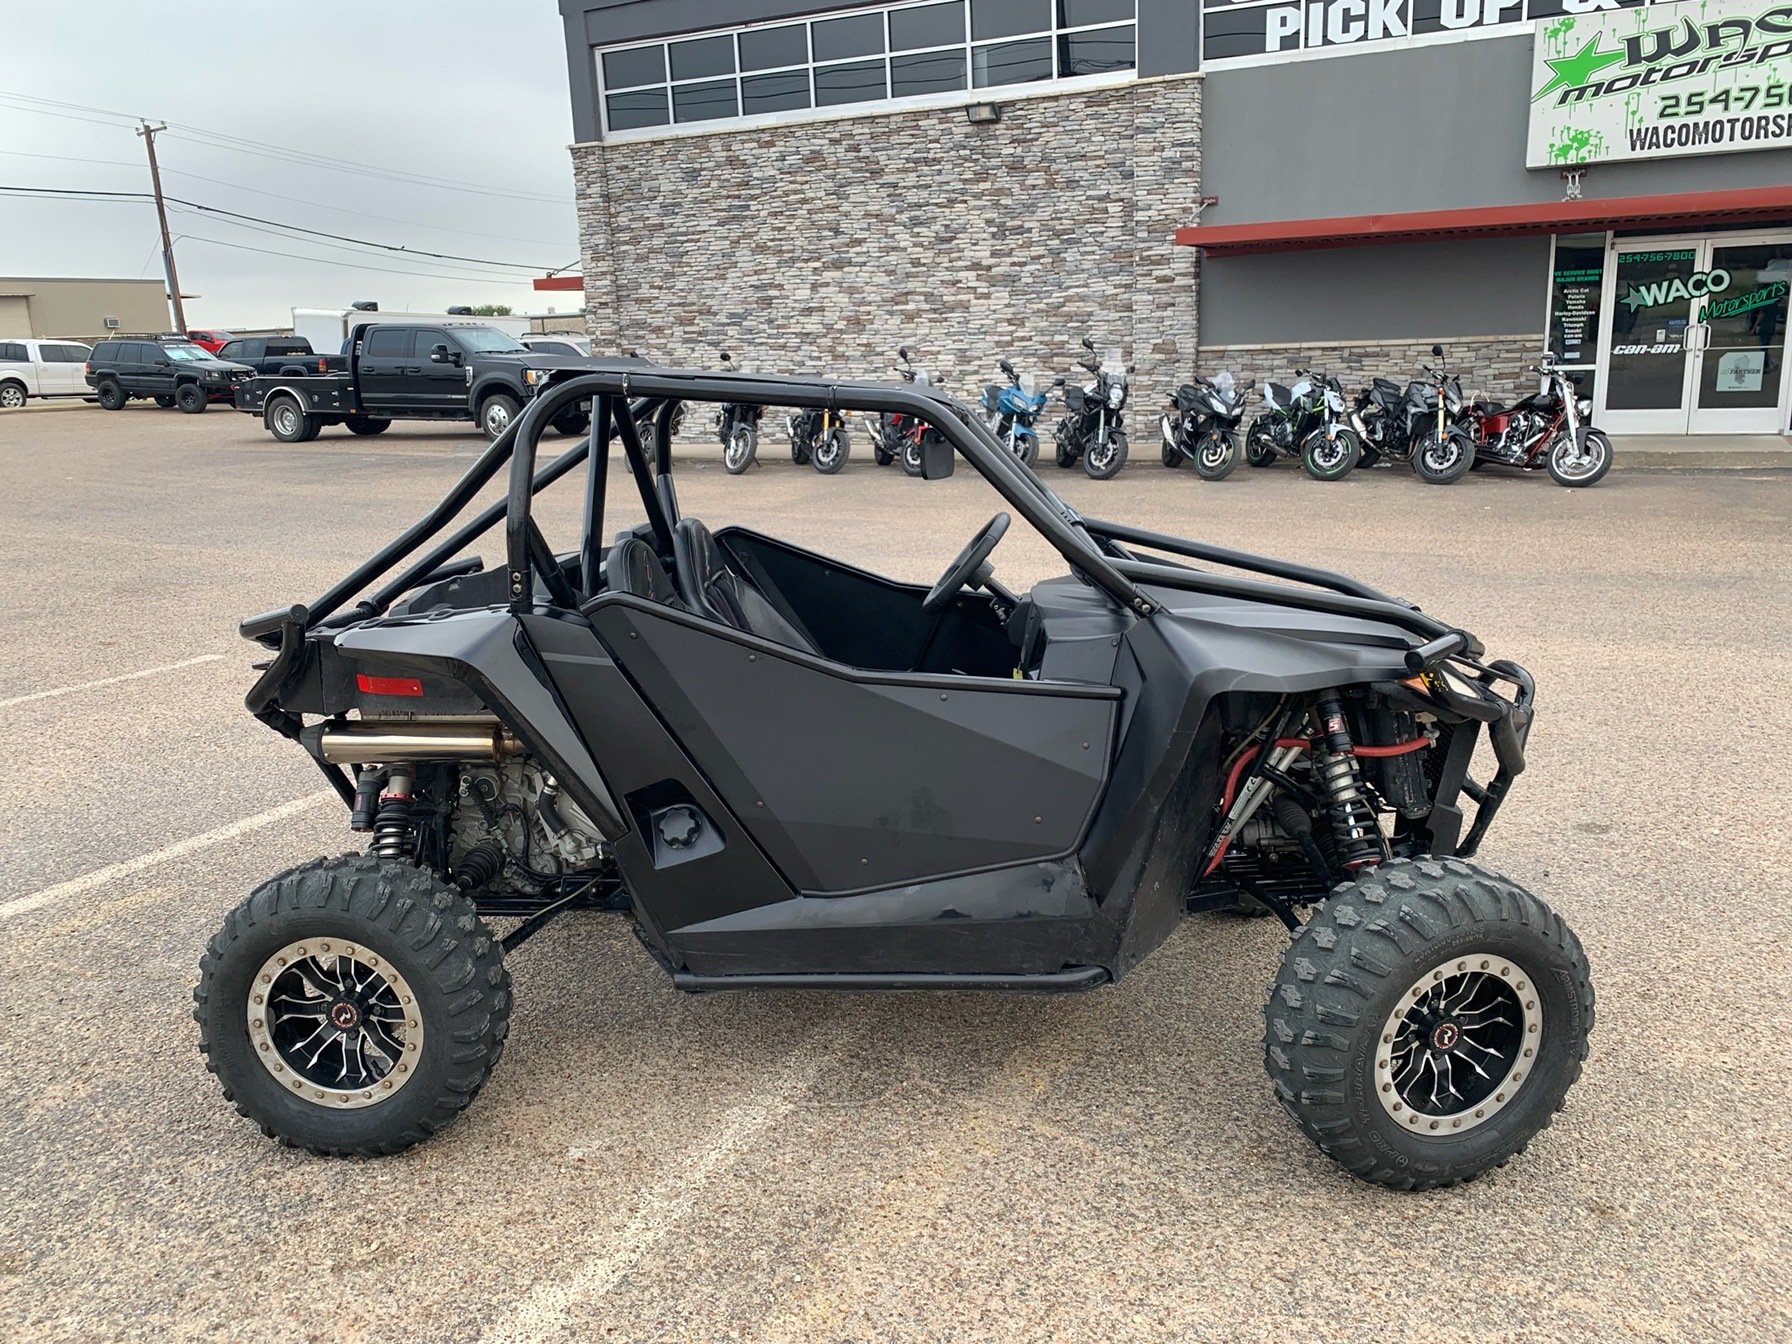 2015 Arctic Cat Wildcat Sport Limited in Waco, Texas - Photo 4